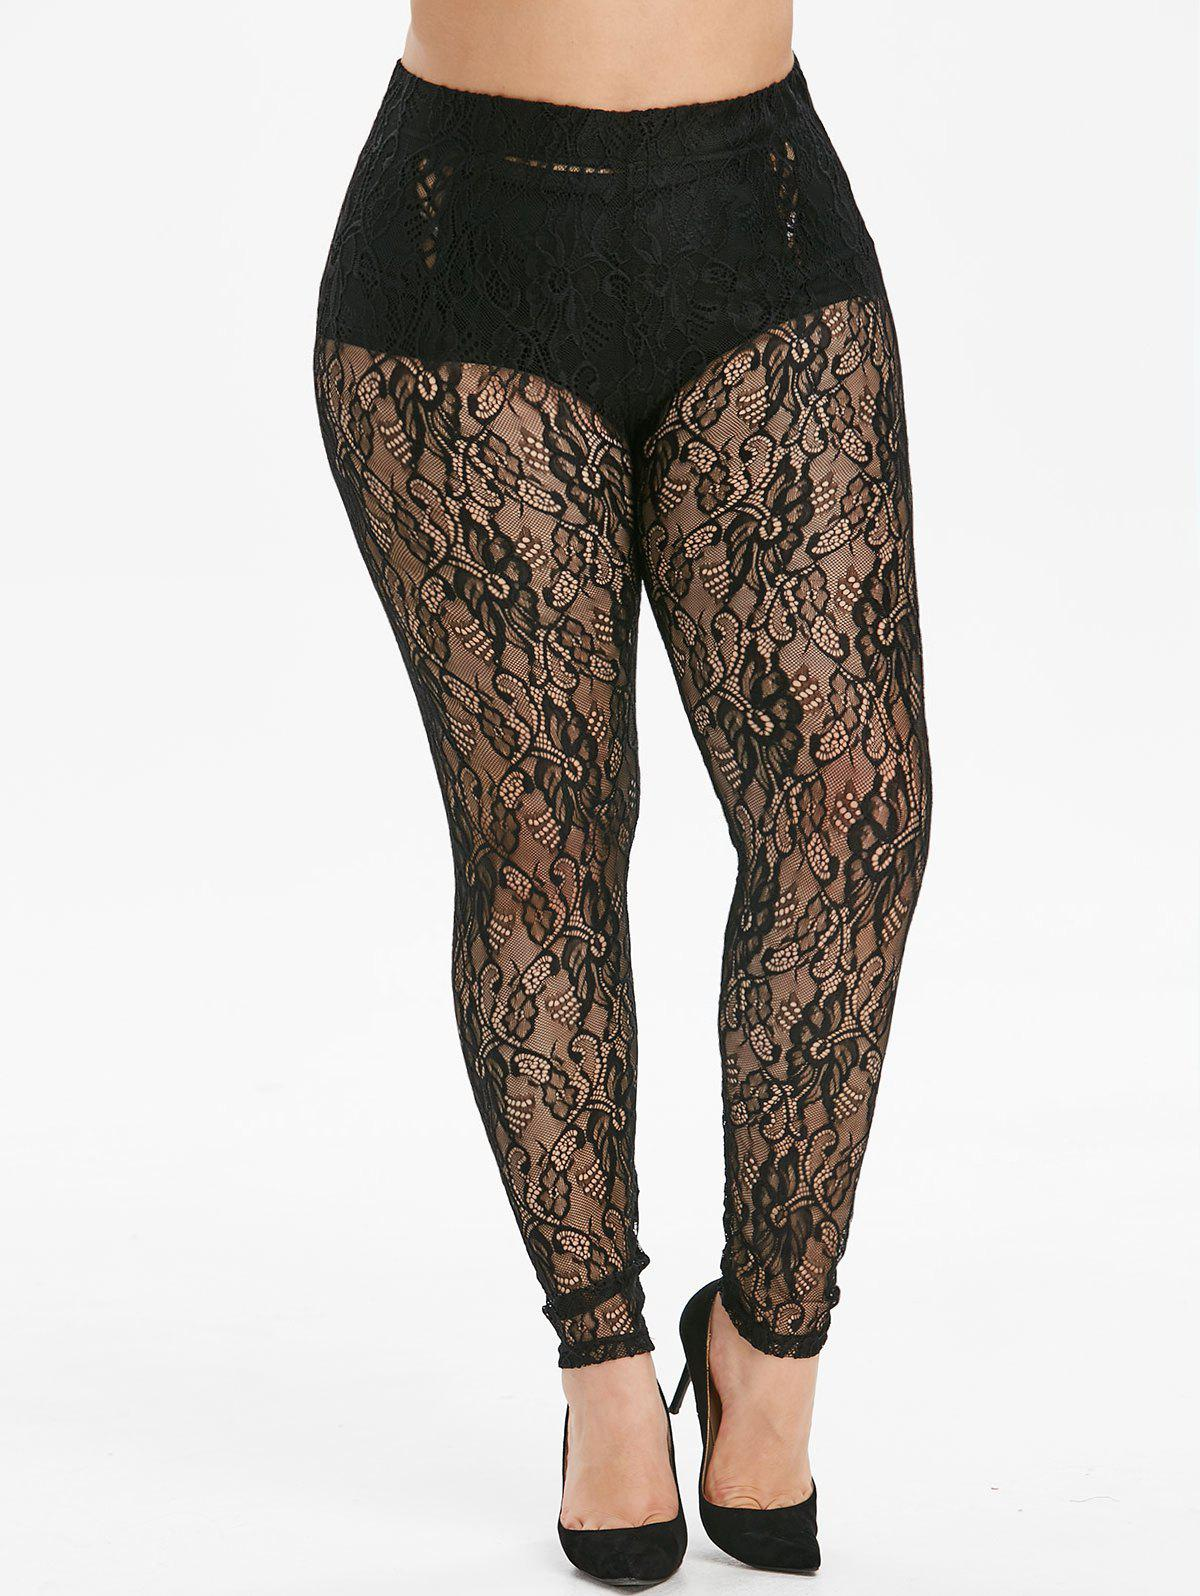 Chic Openwork High Waisted Lace Plus Size Leggings